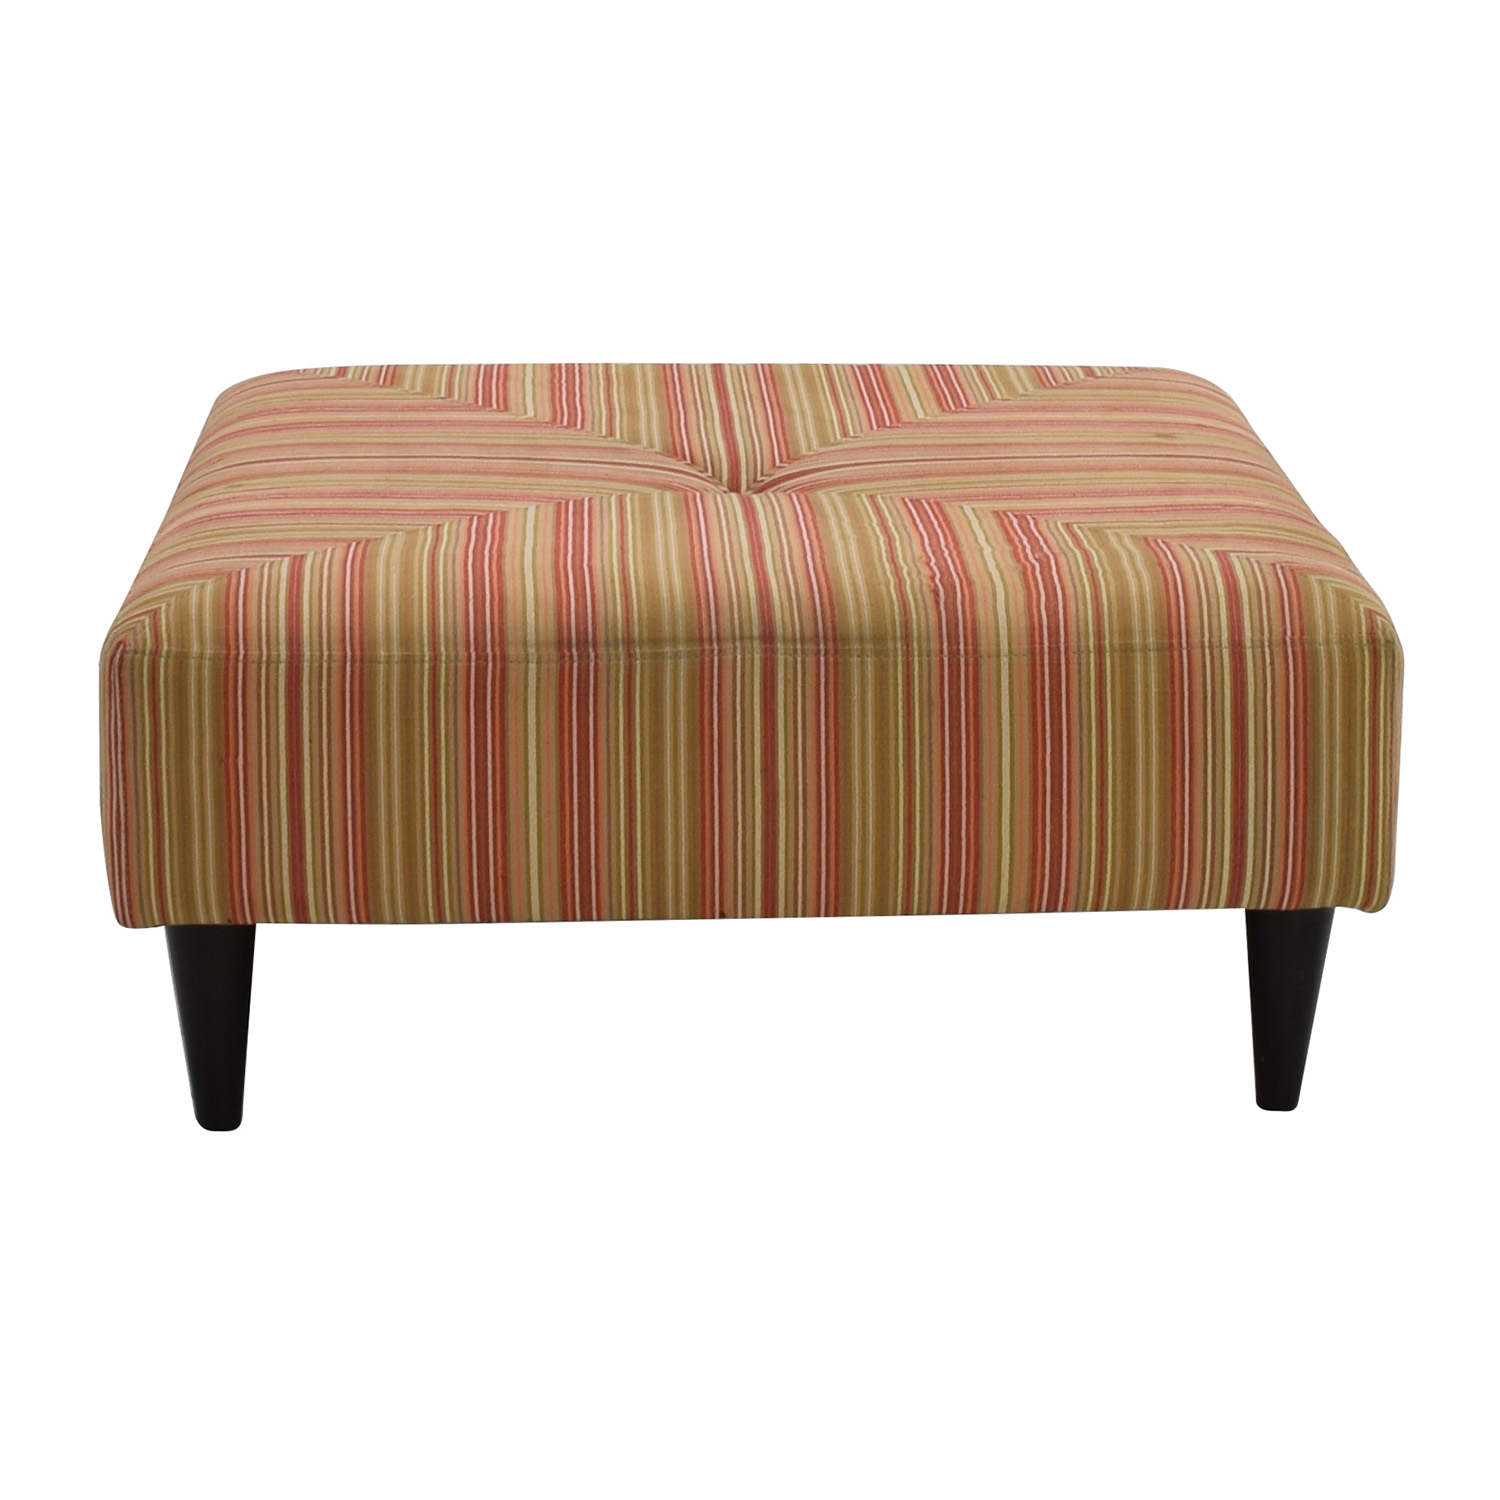 Macys Macy's Red and Green Striped Upholstered Ottoman nj